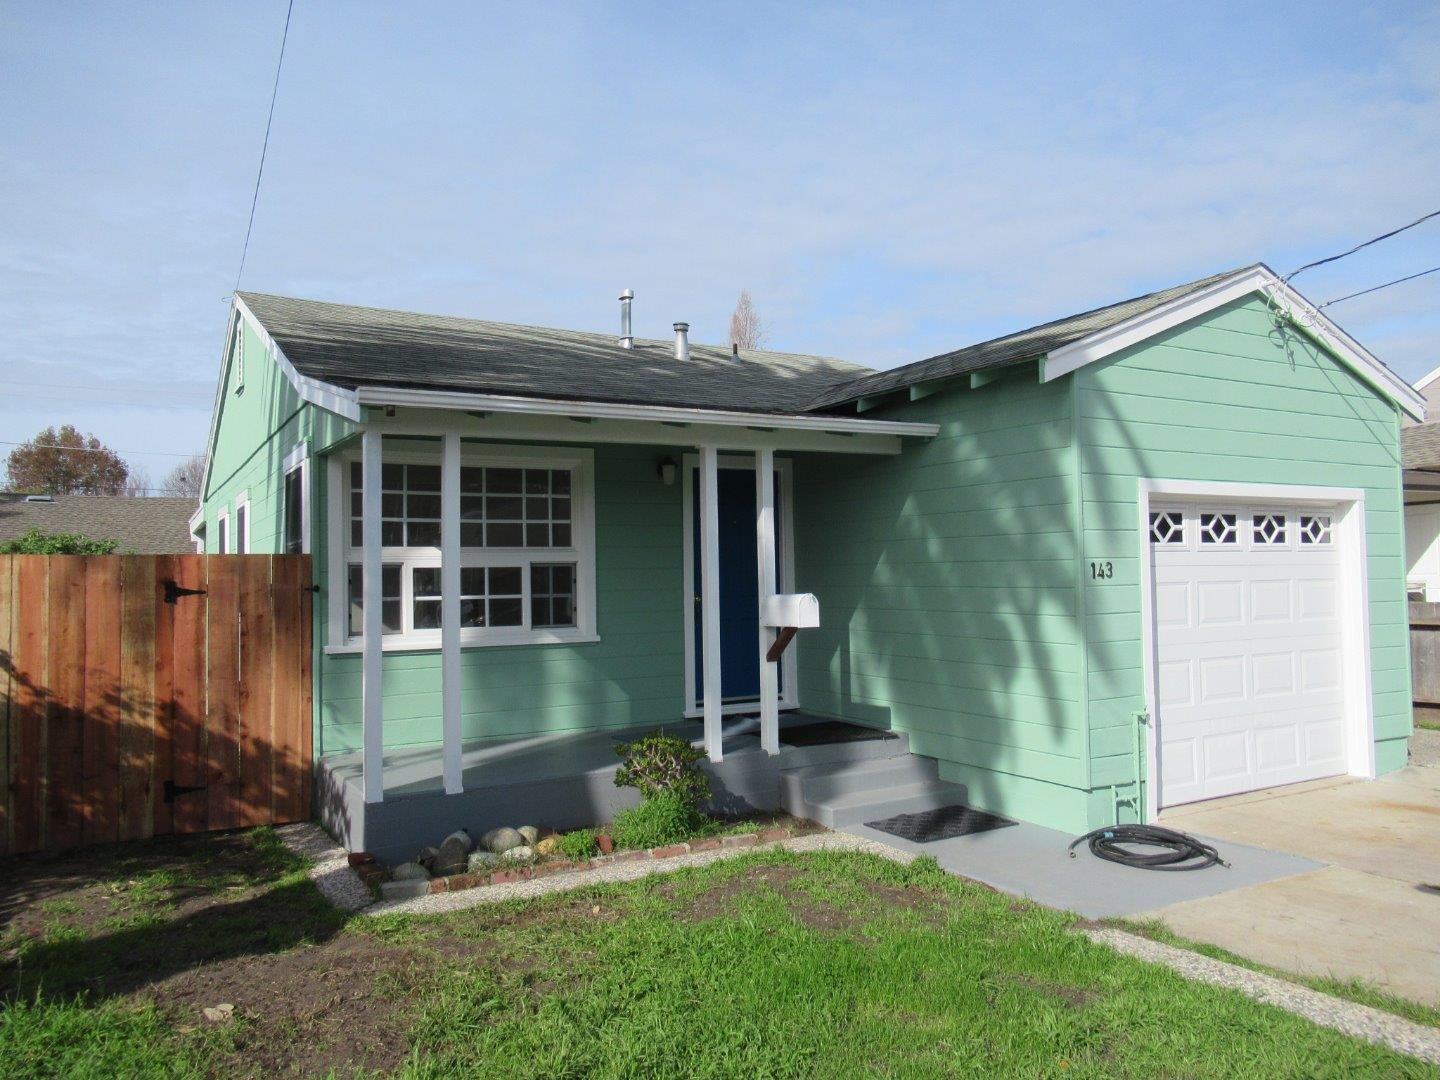 **SOLD 143 Dufour Street, Santa Cruz • $790,000  2 Bedroom, 1 Bathroom • 834 Sq. Ft.